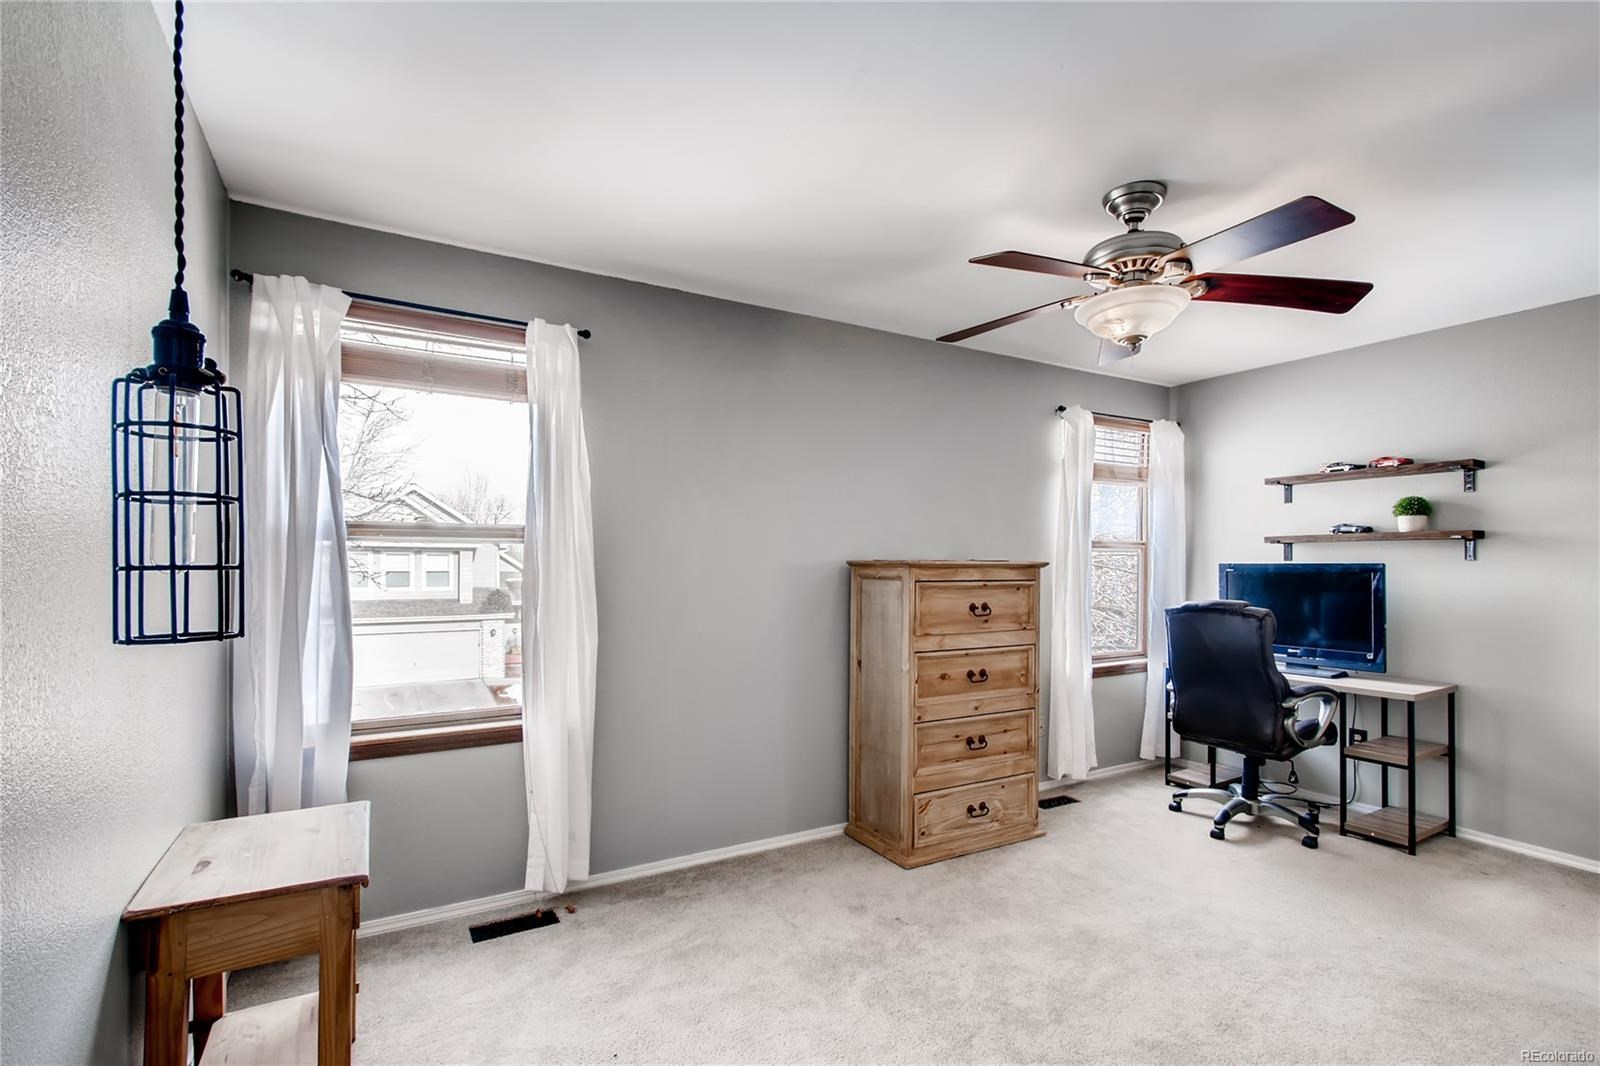 MLS# 3664588 - 17 - 13150 W 63rd Place, Arvada, CO 80004